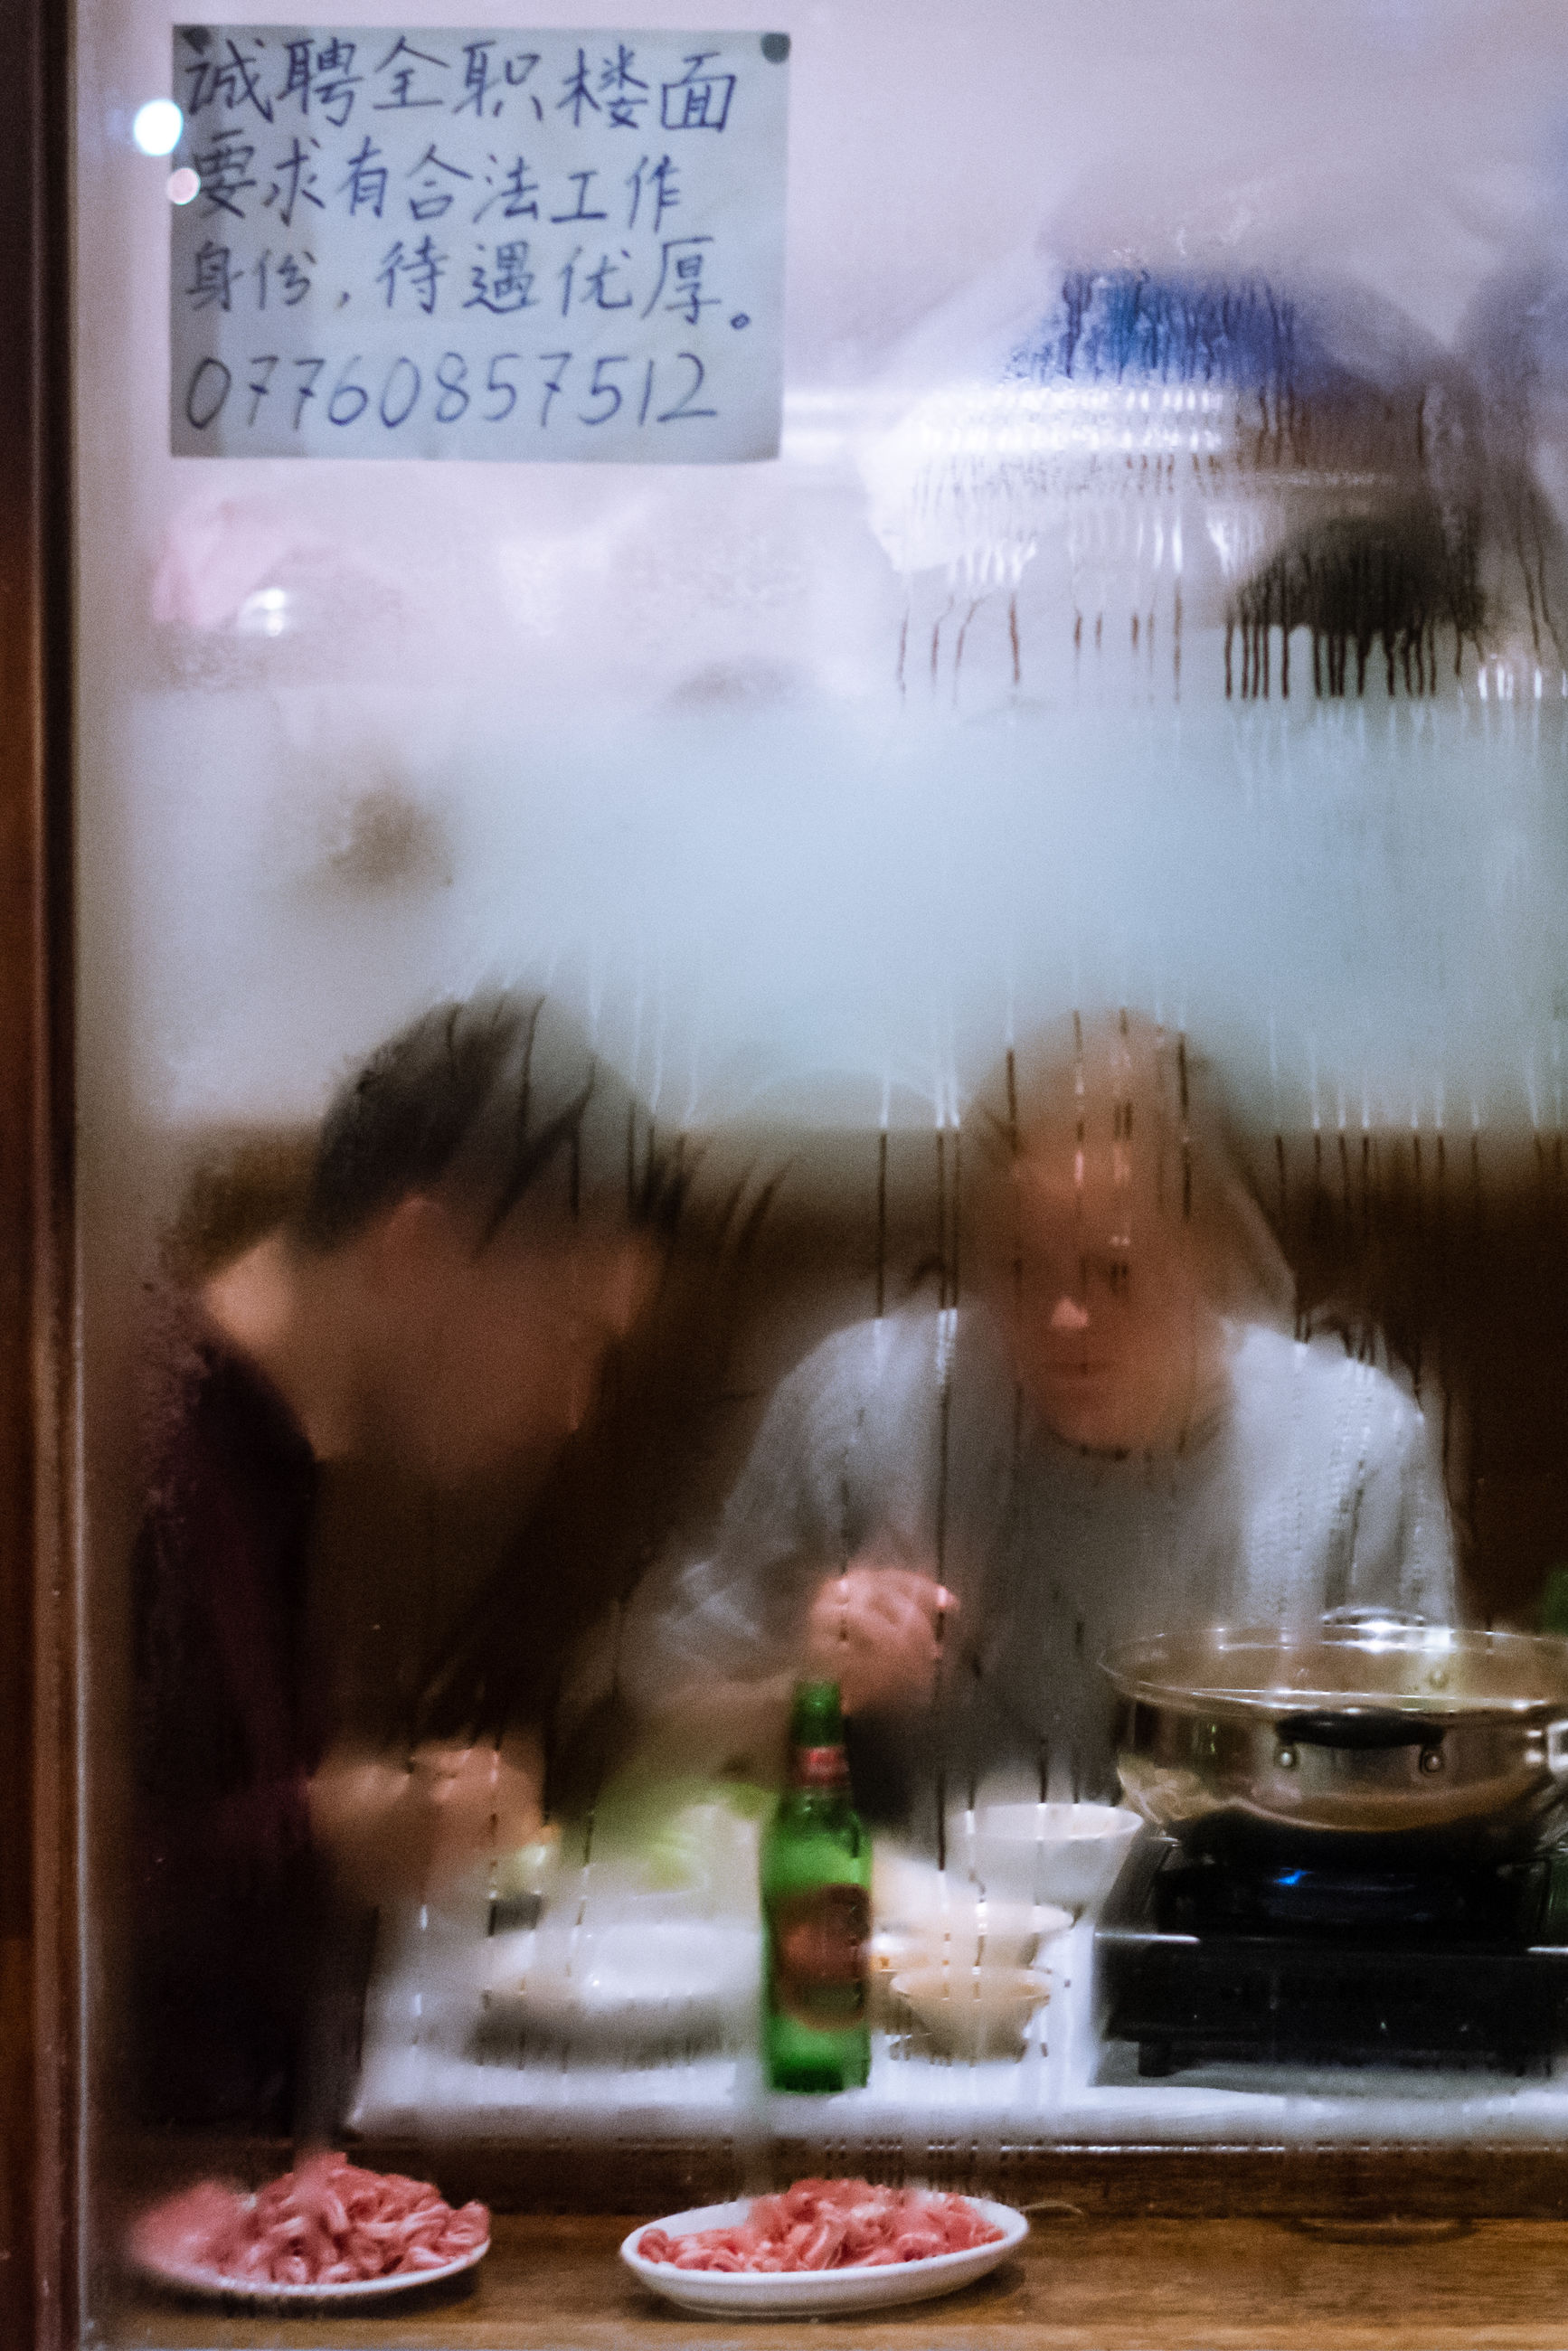 food and drink, text, food, indoors, women, real people, preparation, glass - material, lifestyles, freshness, transparent, communication, people, western script, preparing food, motion, men, table, window